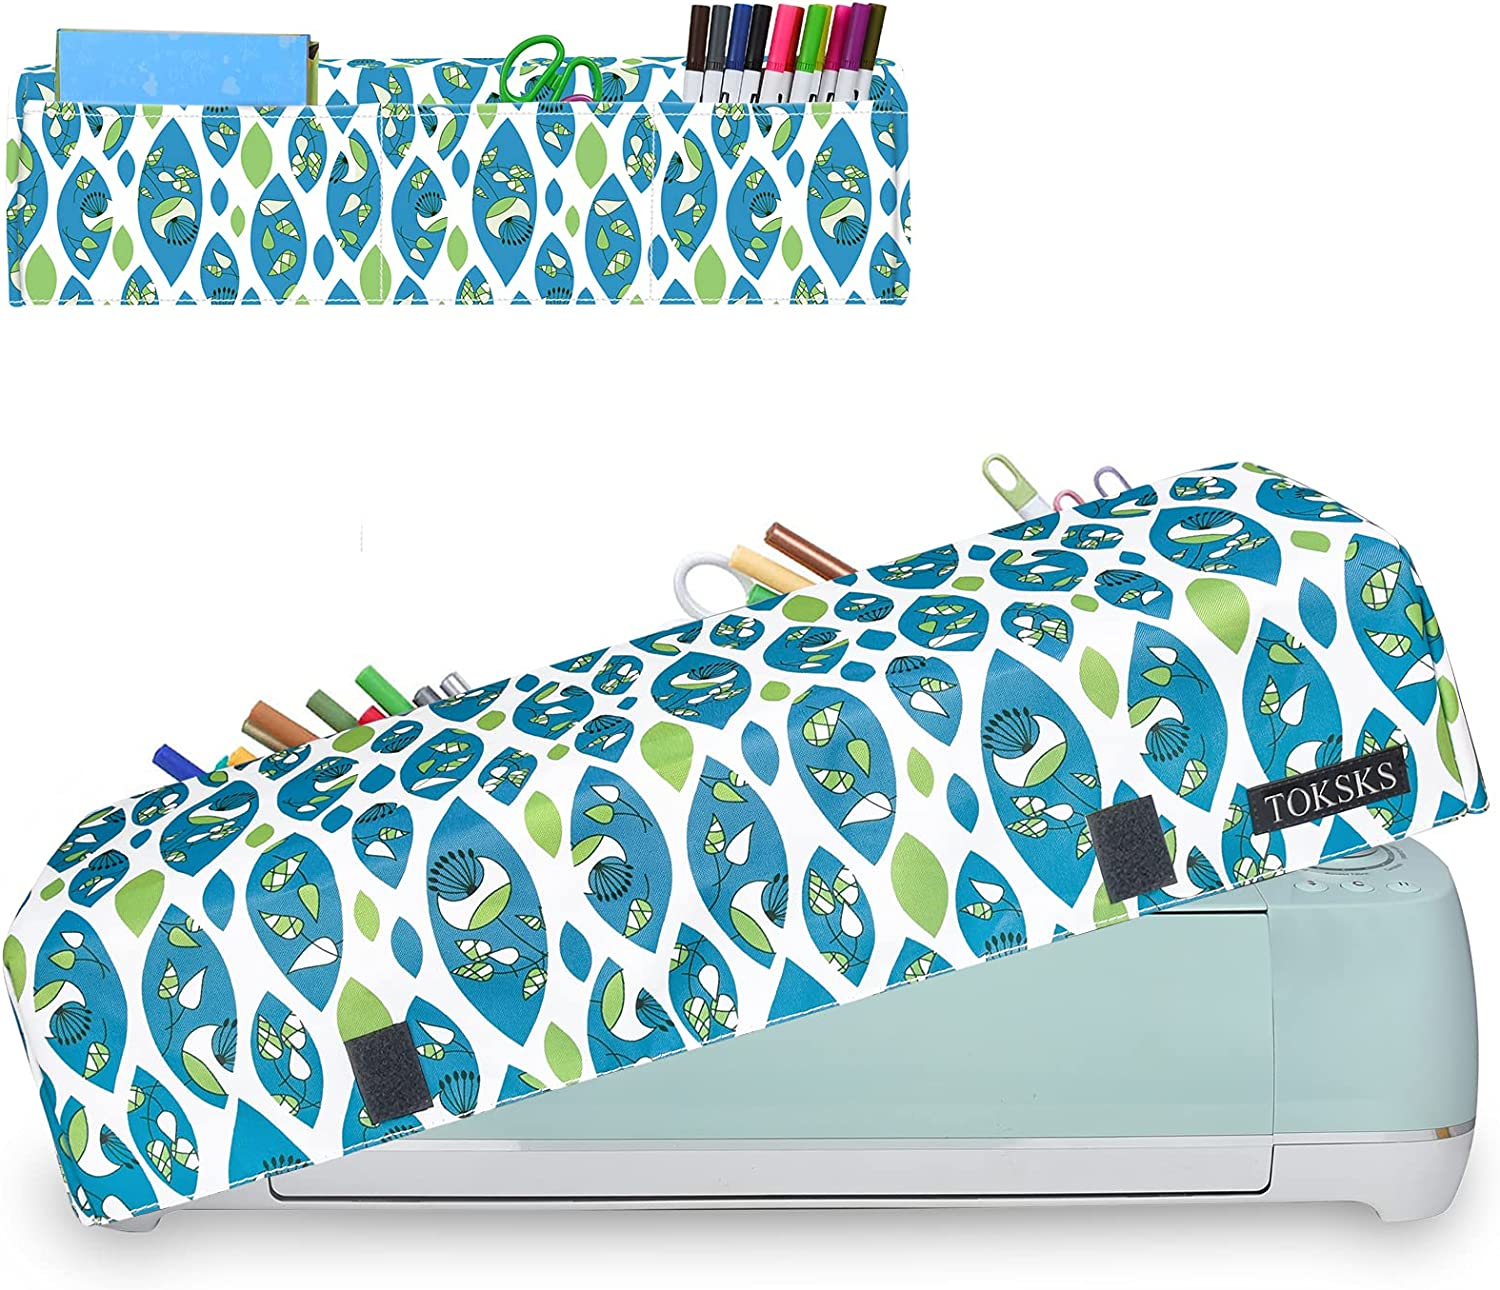 2021 model Dust Cover Compatible for Cricut Maker Access 2 and Air Explore Max 62% OFF